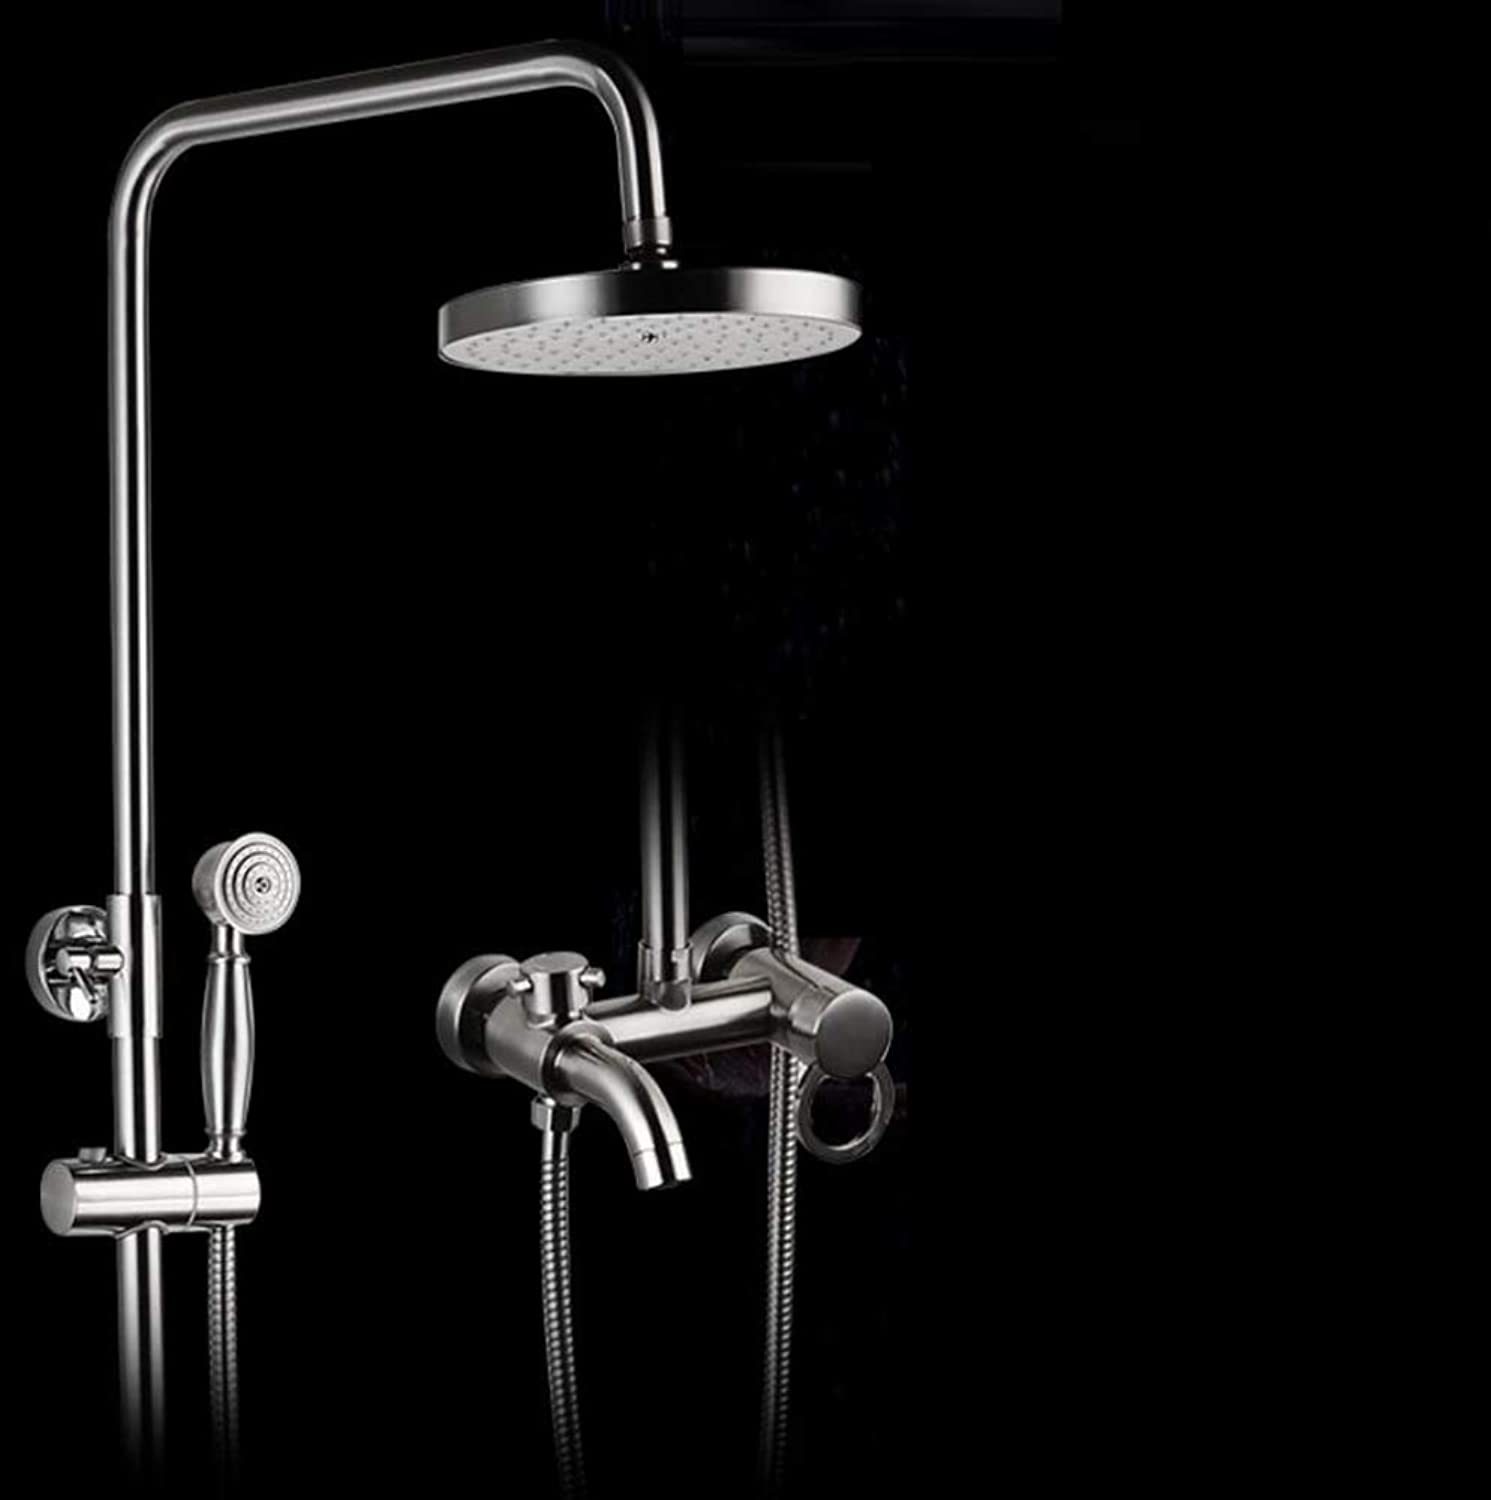 LWUDI Shower Systems with Rain Handheld, massaging shower head,Brushed stainless steel take a shower Set,Can lift bathroom Circular Shower Faucet,showerhead with shower